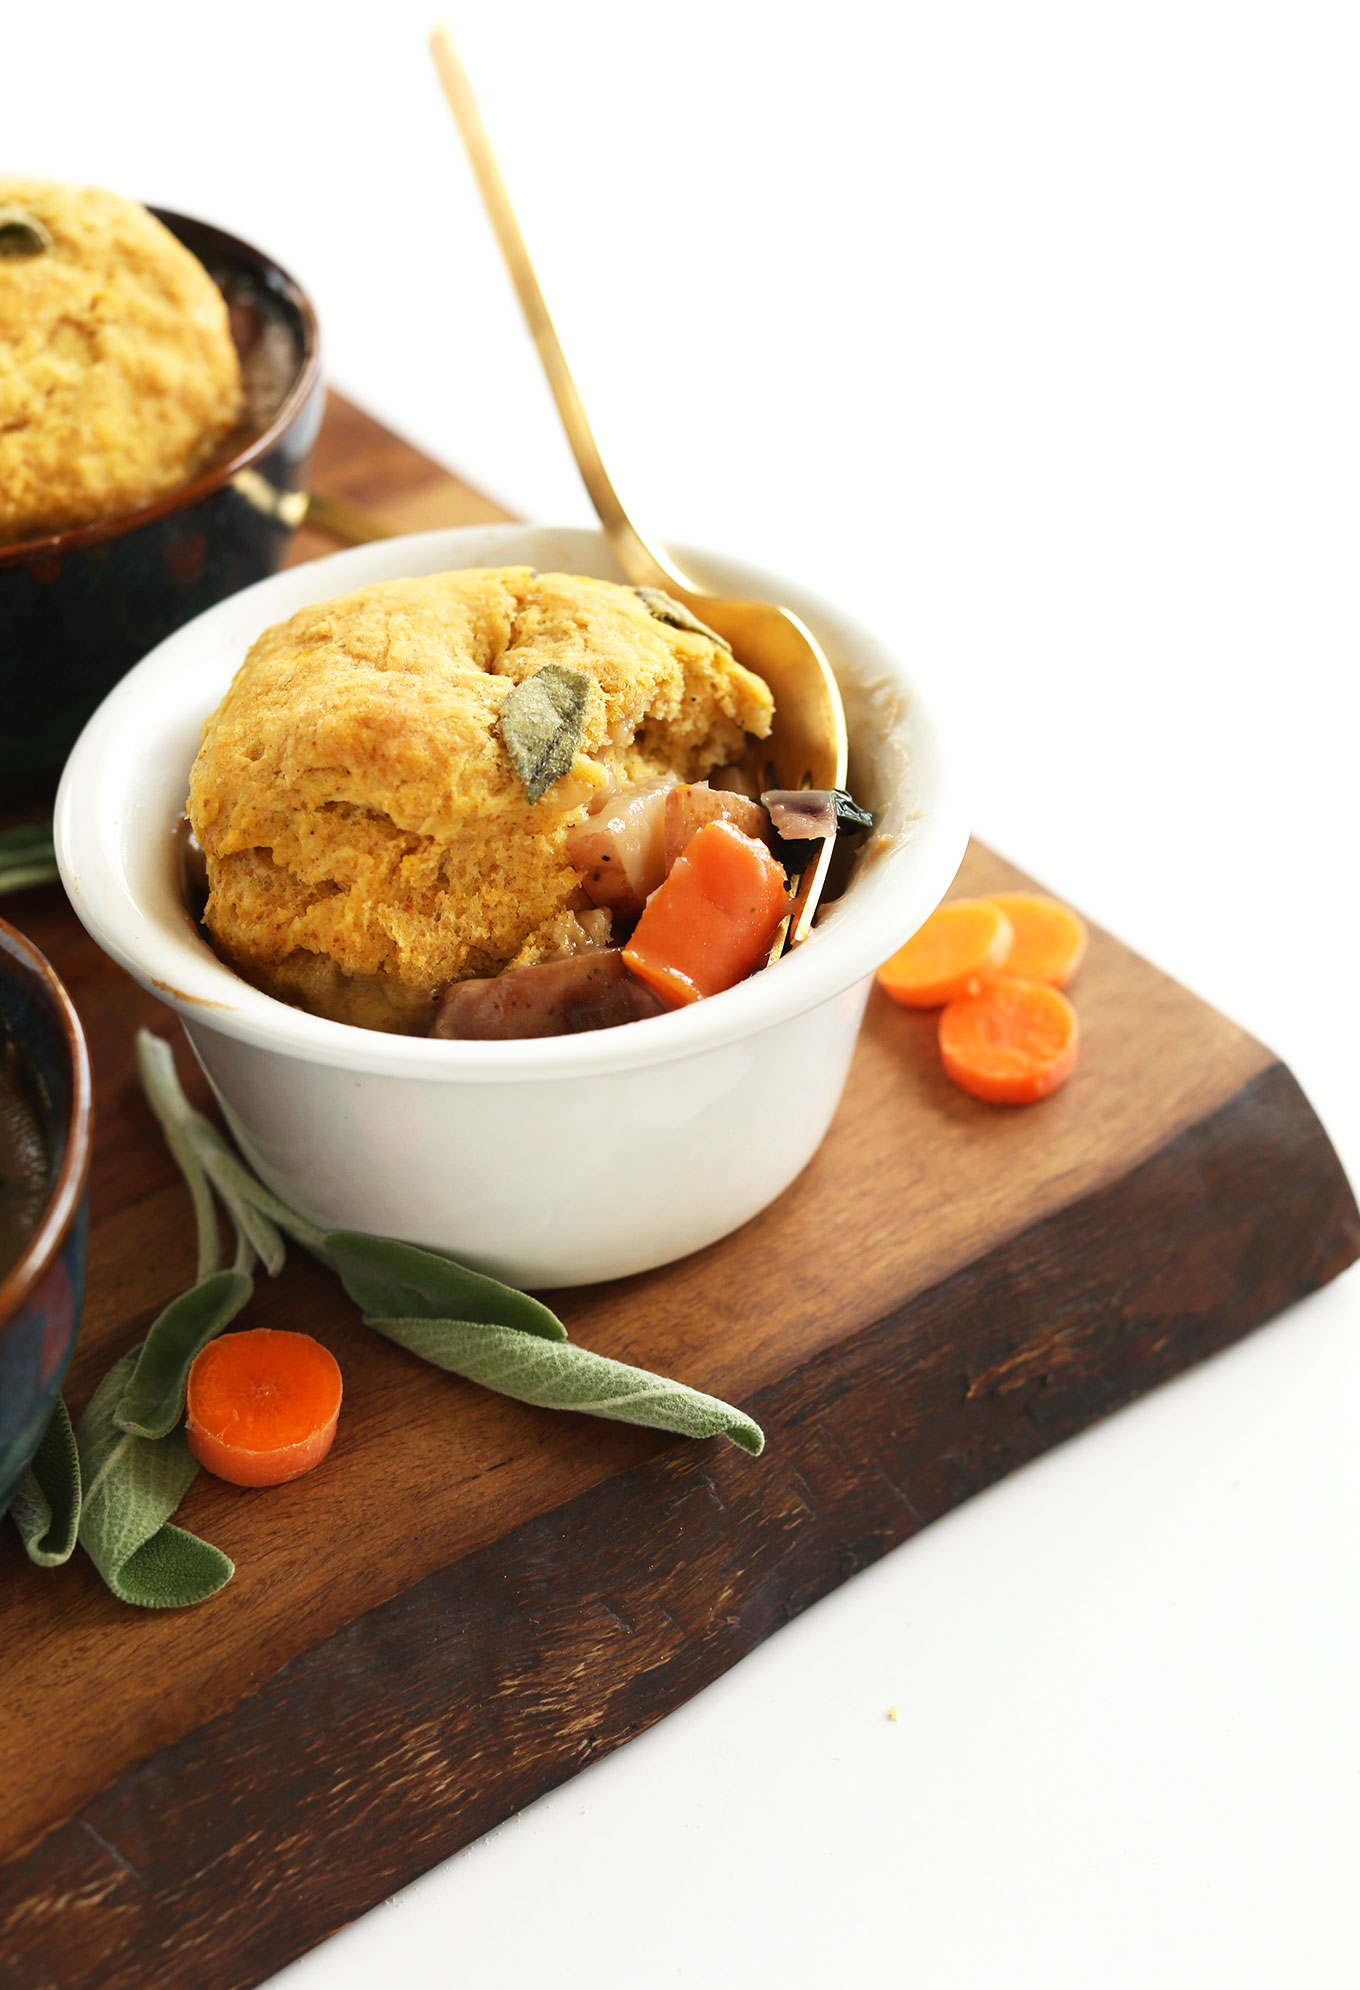 Bowls of our veggie-loaded Vegan Fall Pot Pies